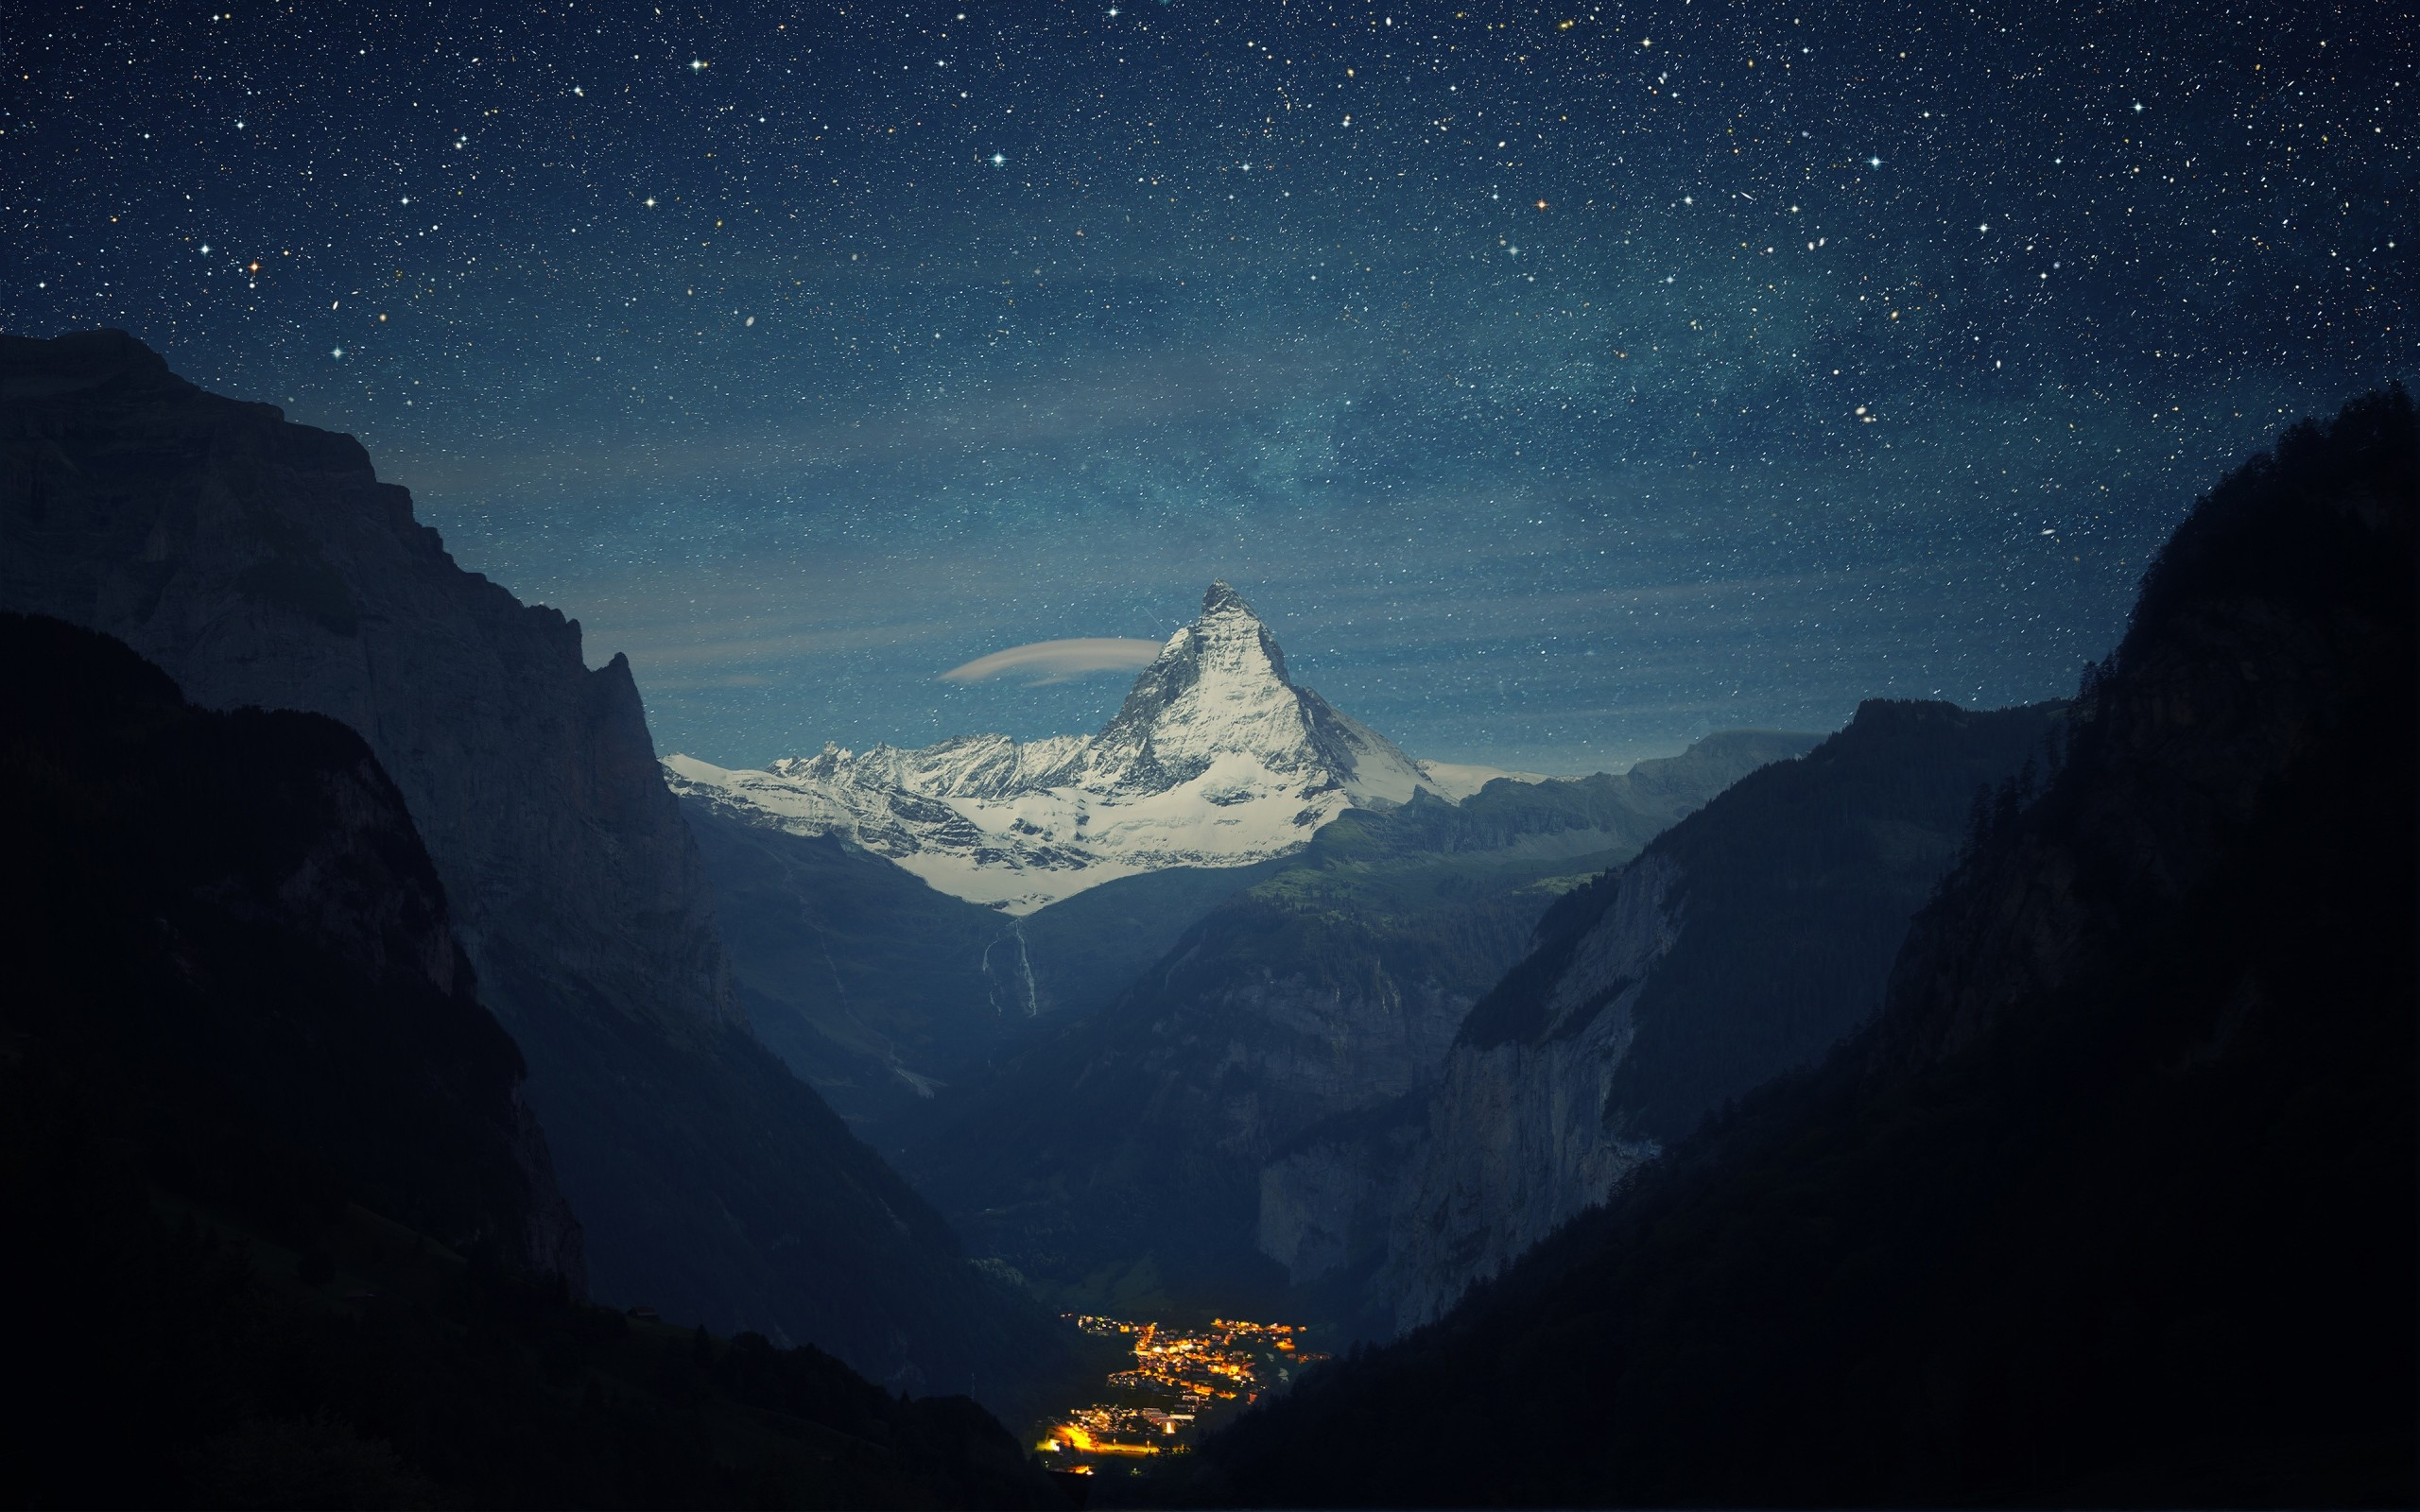 2560x1600 Preview wallpaper switzerland, alps, mountains, night, beautiful landscape